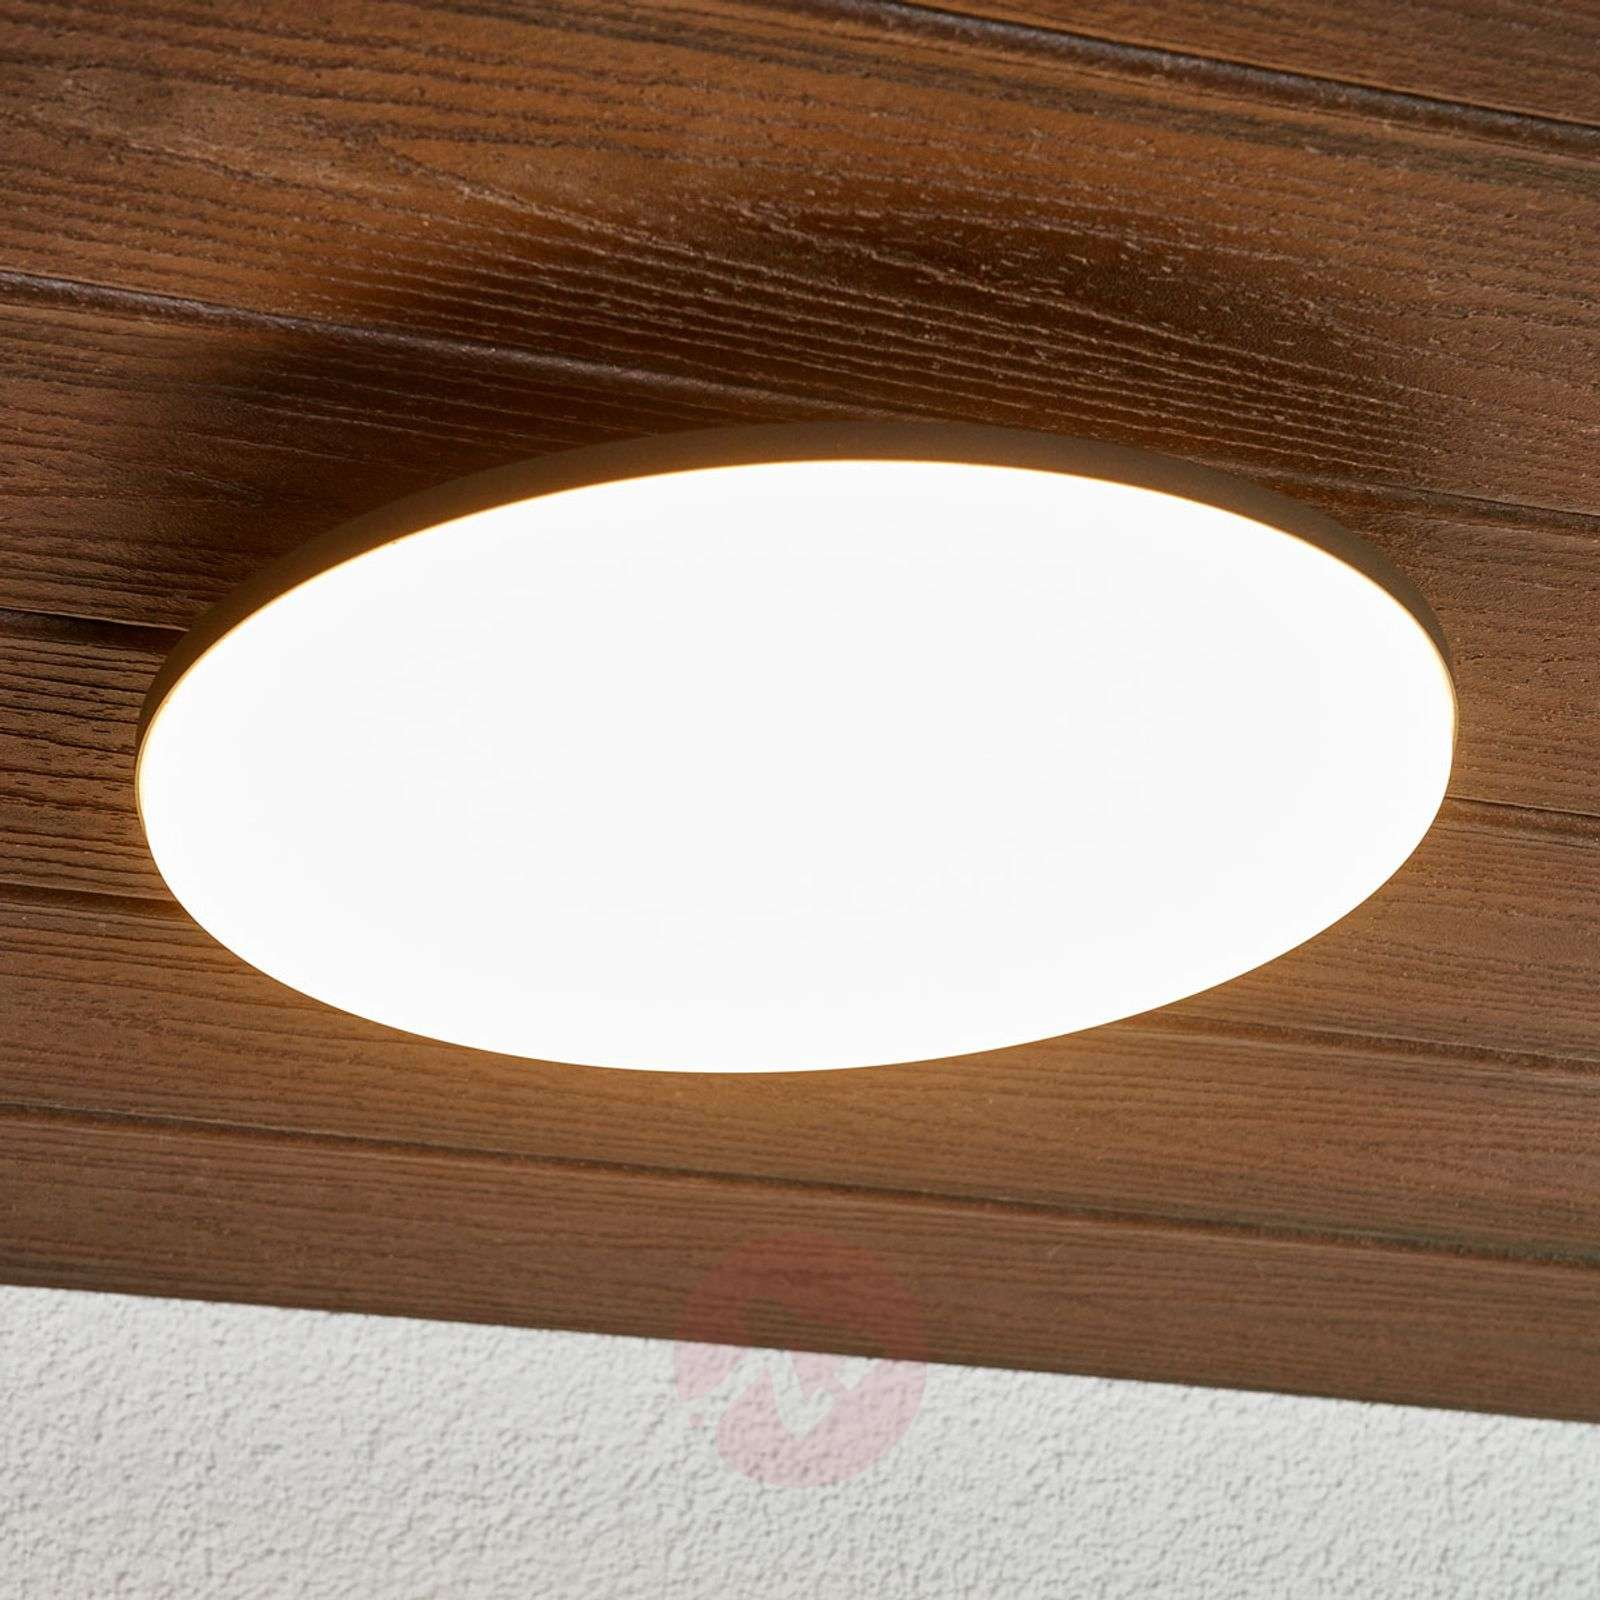 LED Outdoor Ceiling Light Benna, Motion Detector 9619116 03 ...